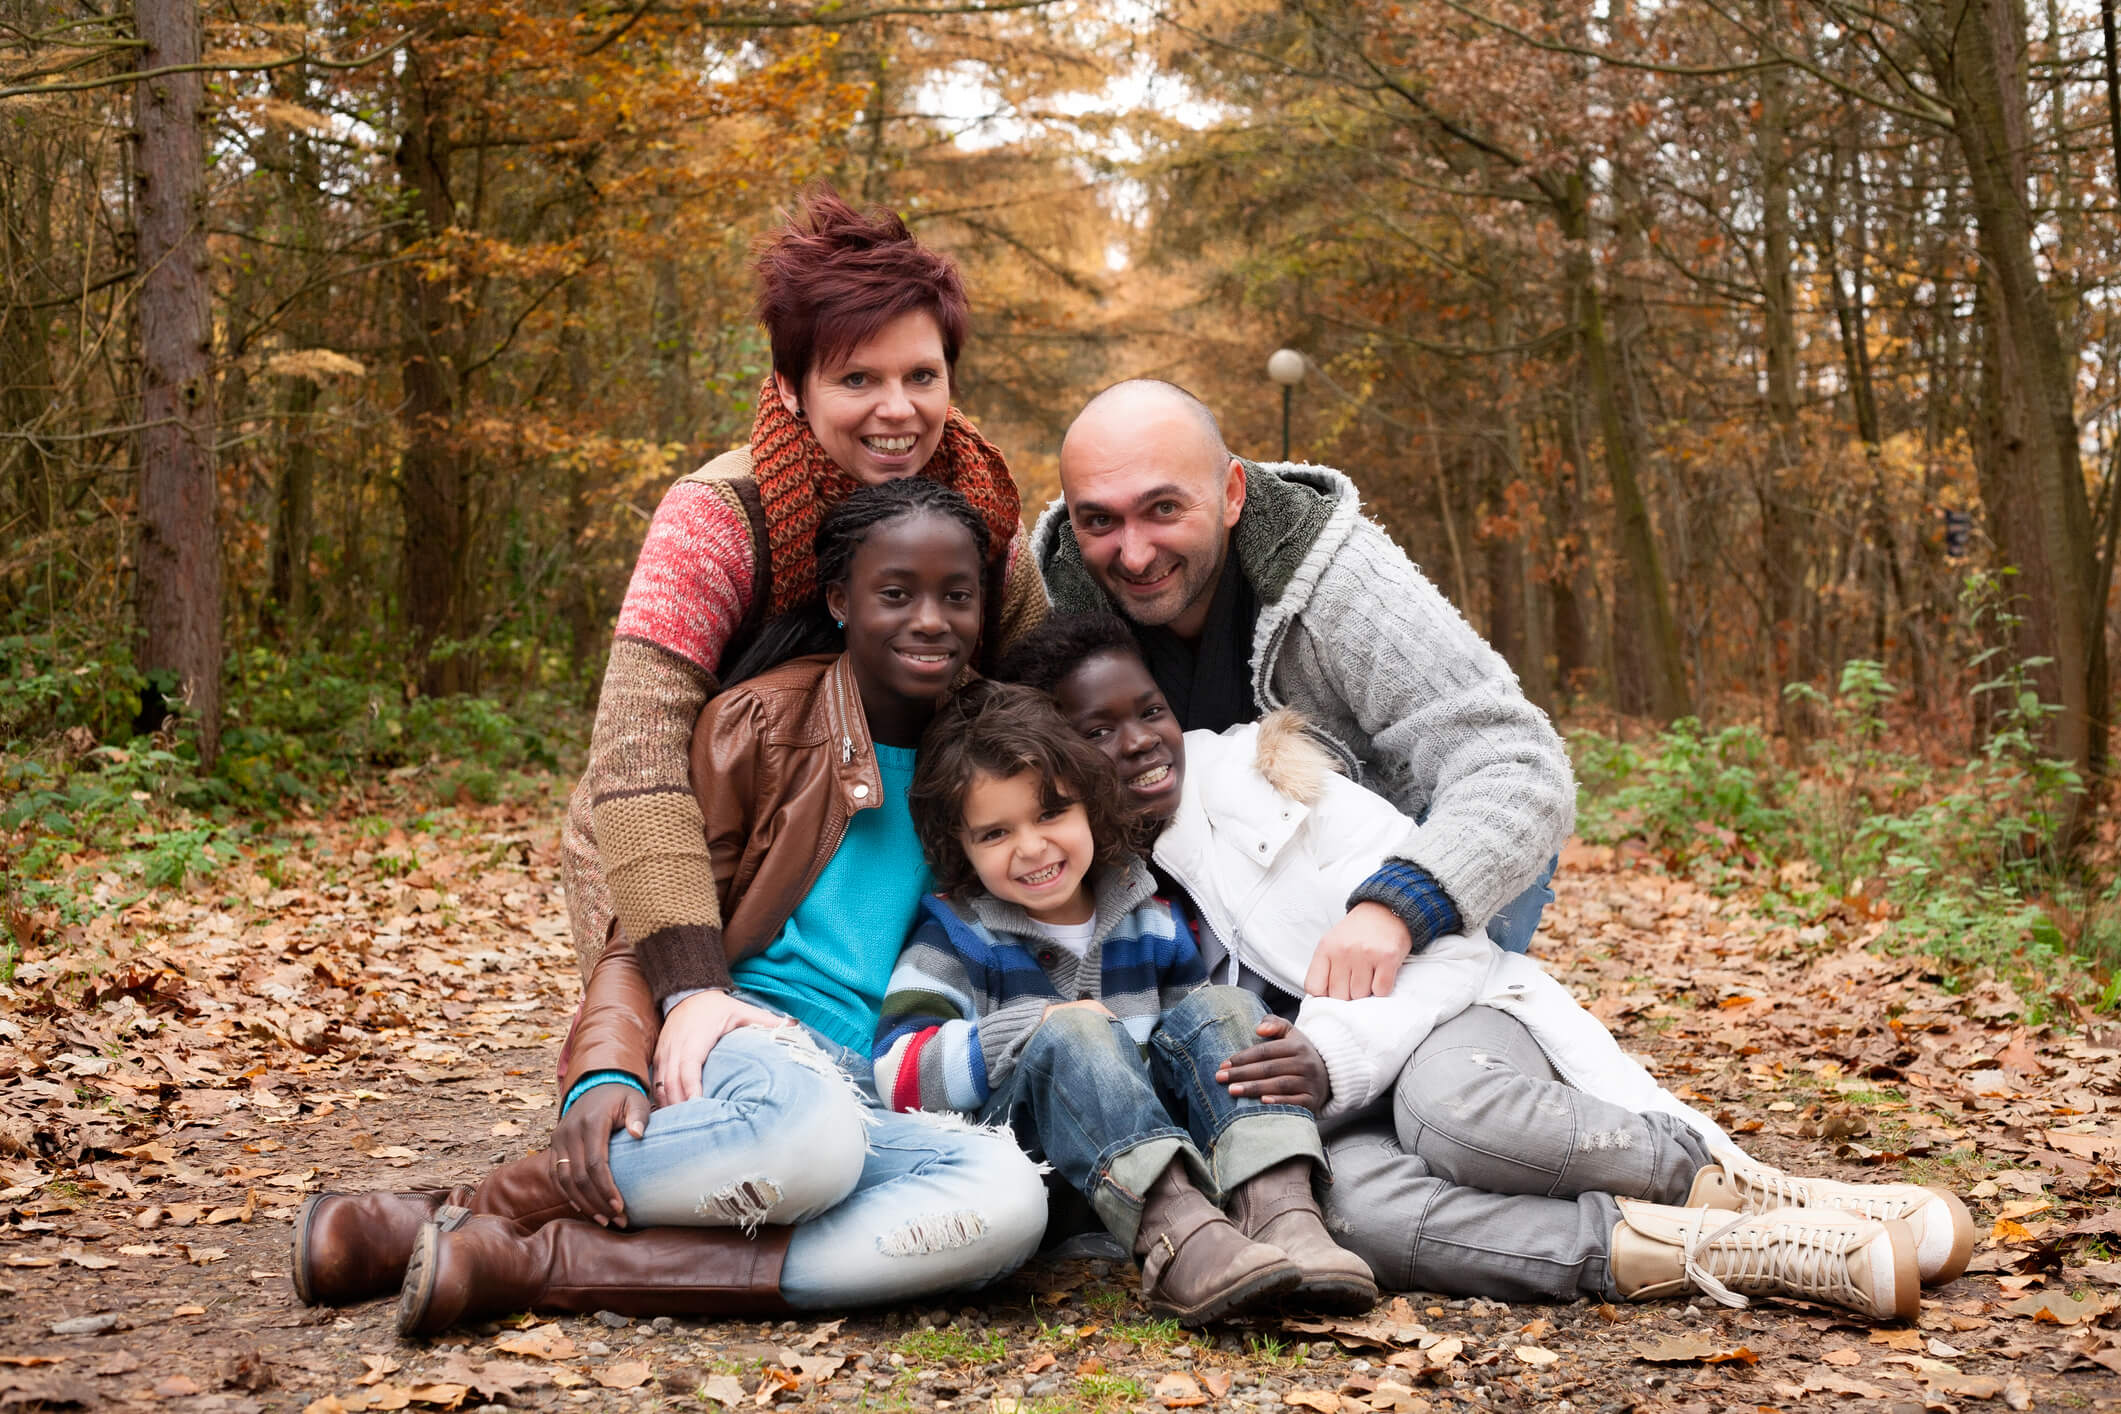 Multicultural family posing in the woods during autumn